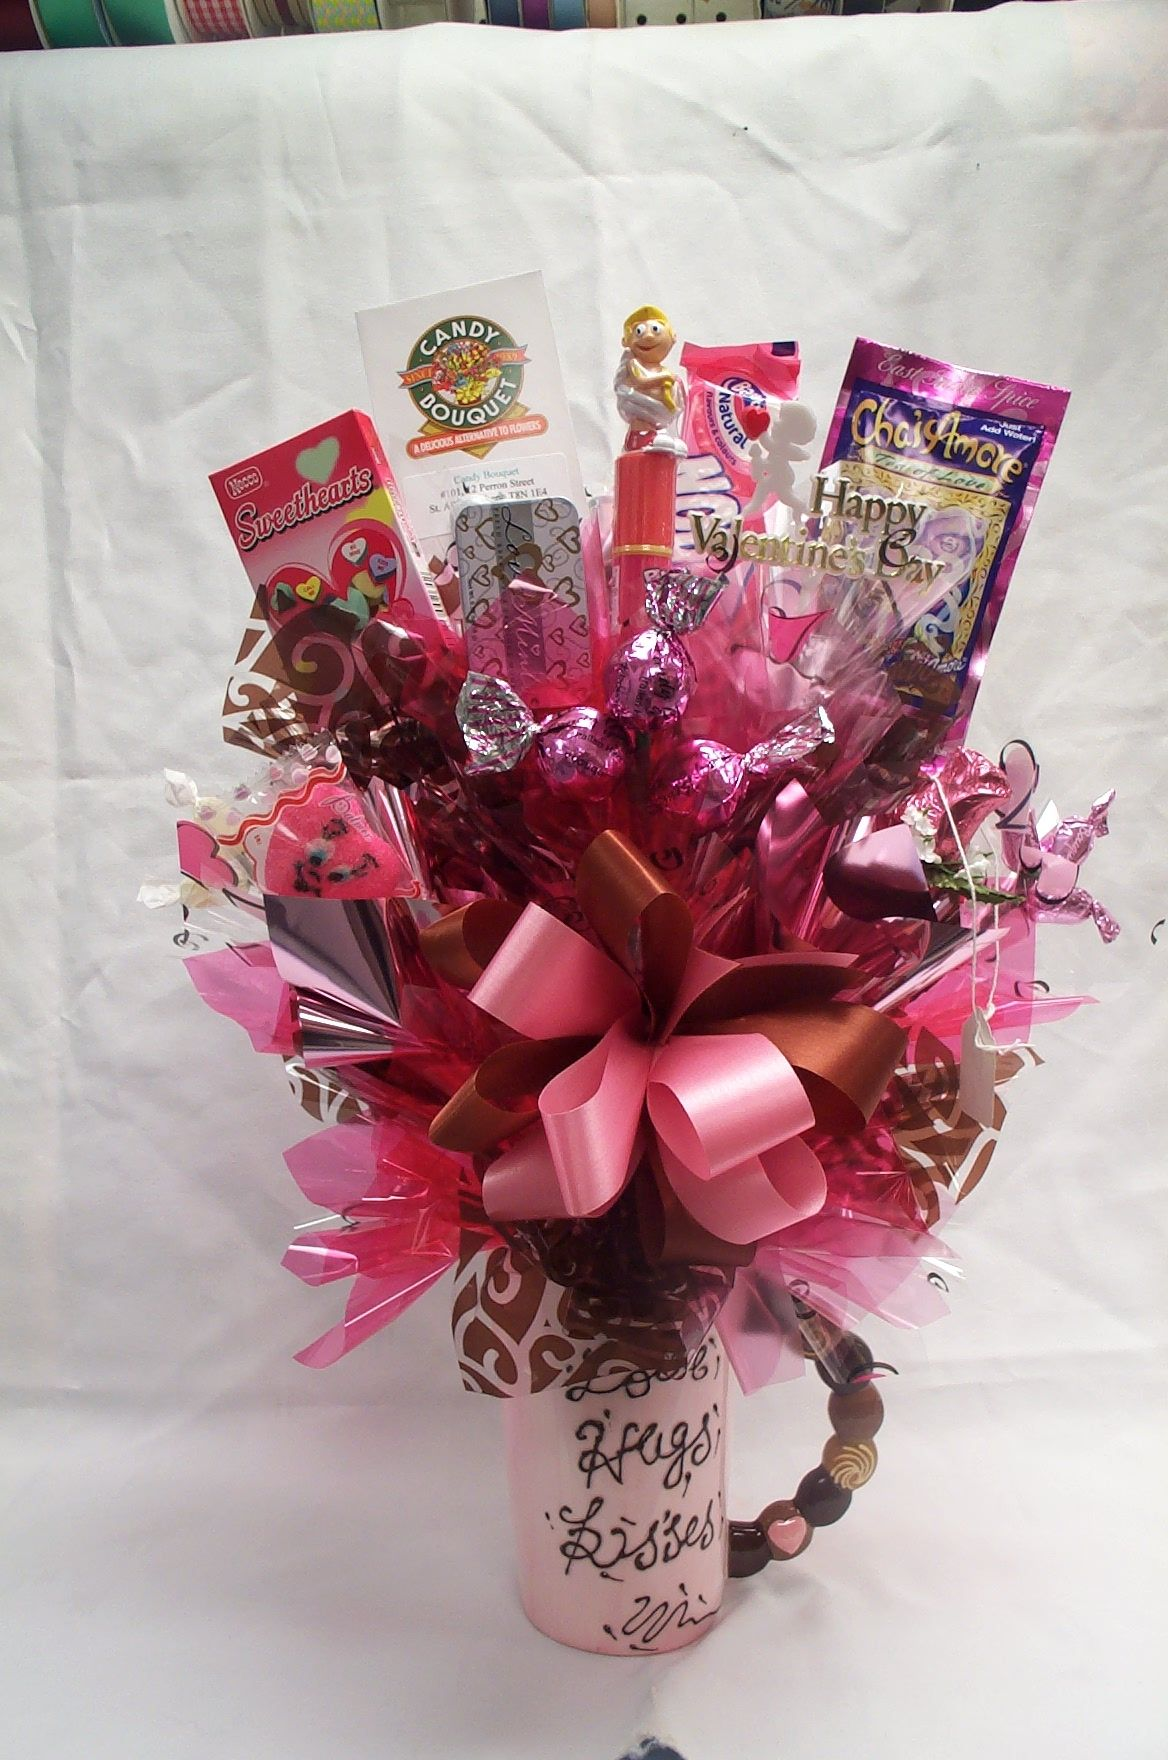 Hugs and kisses candy ideas pinterest hug and kiss hugs and kisses bouquet izmirmasajfo